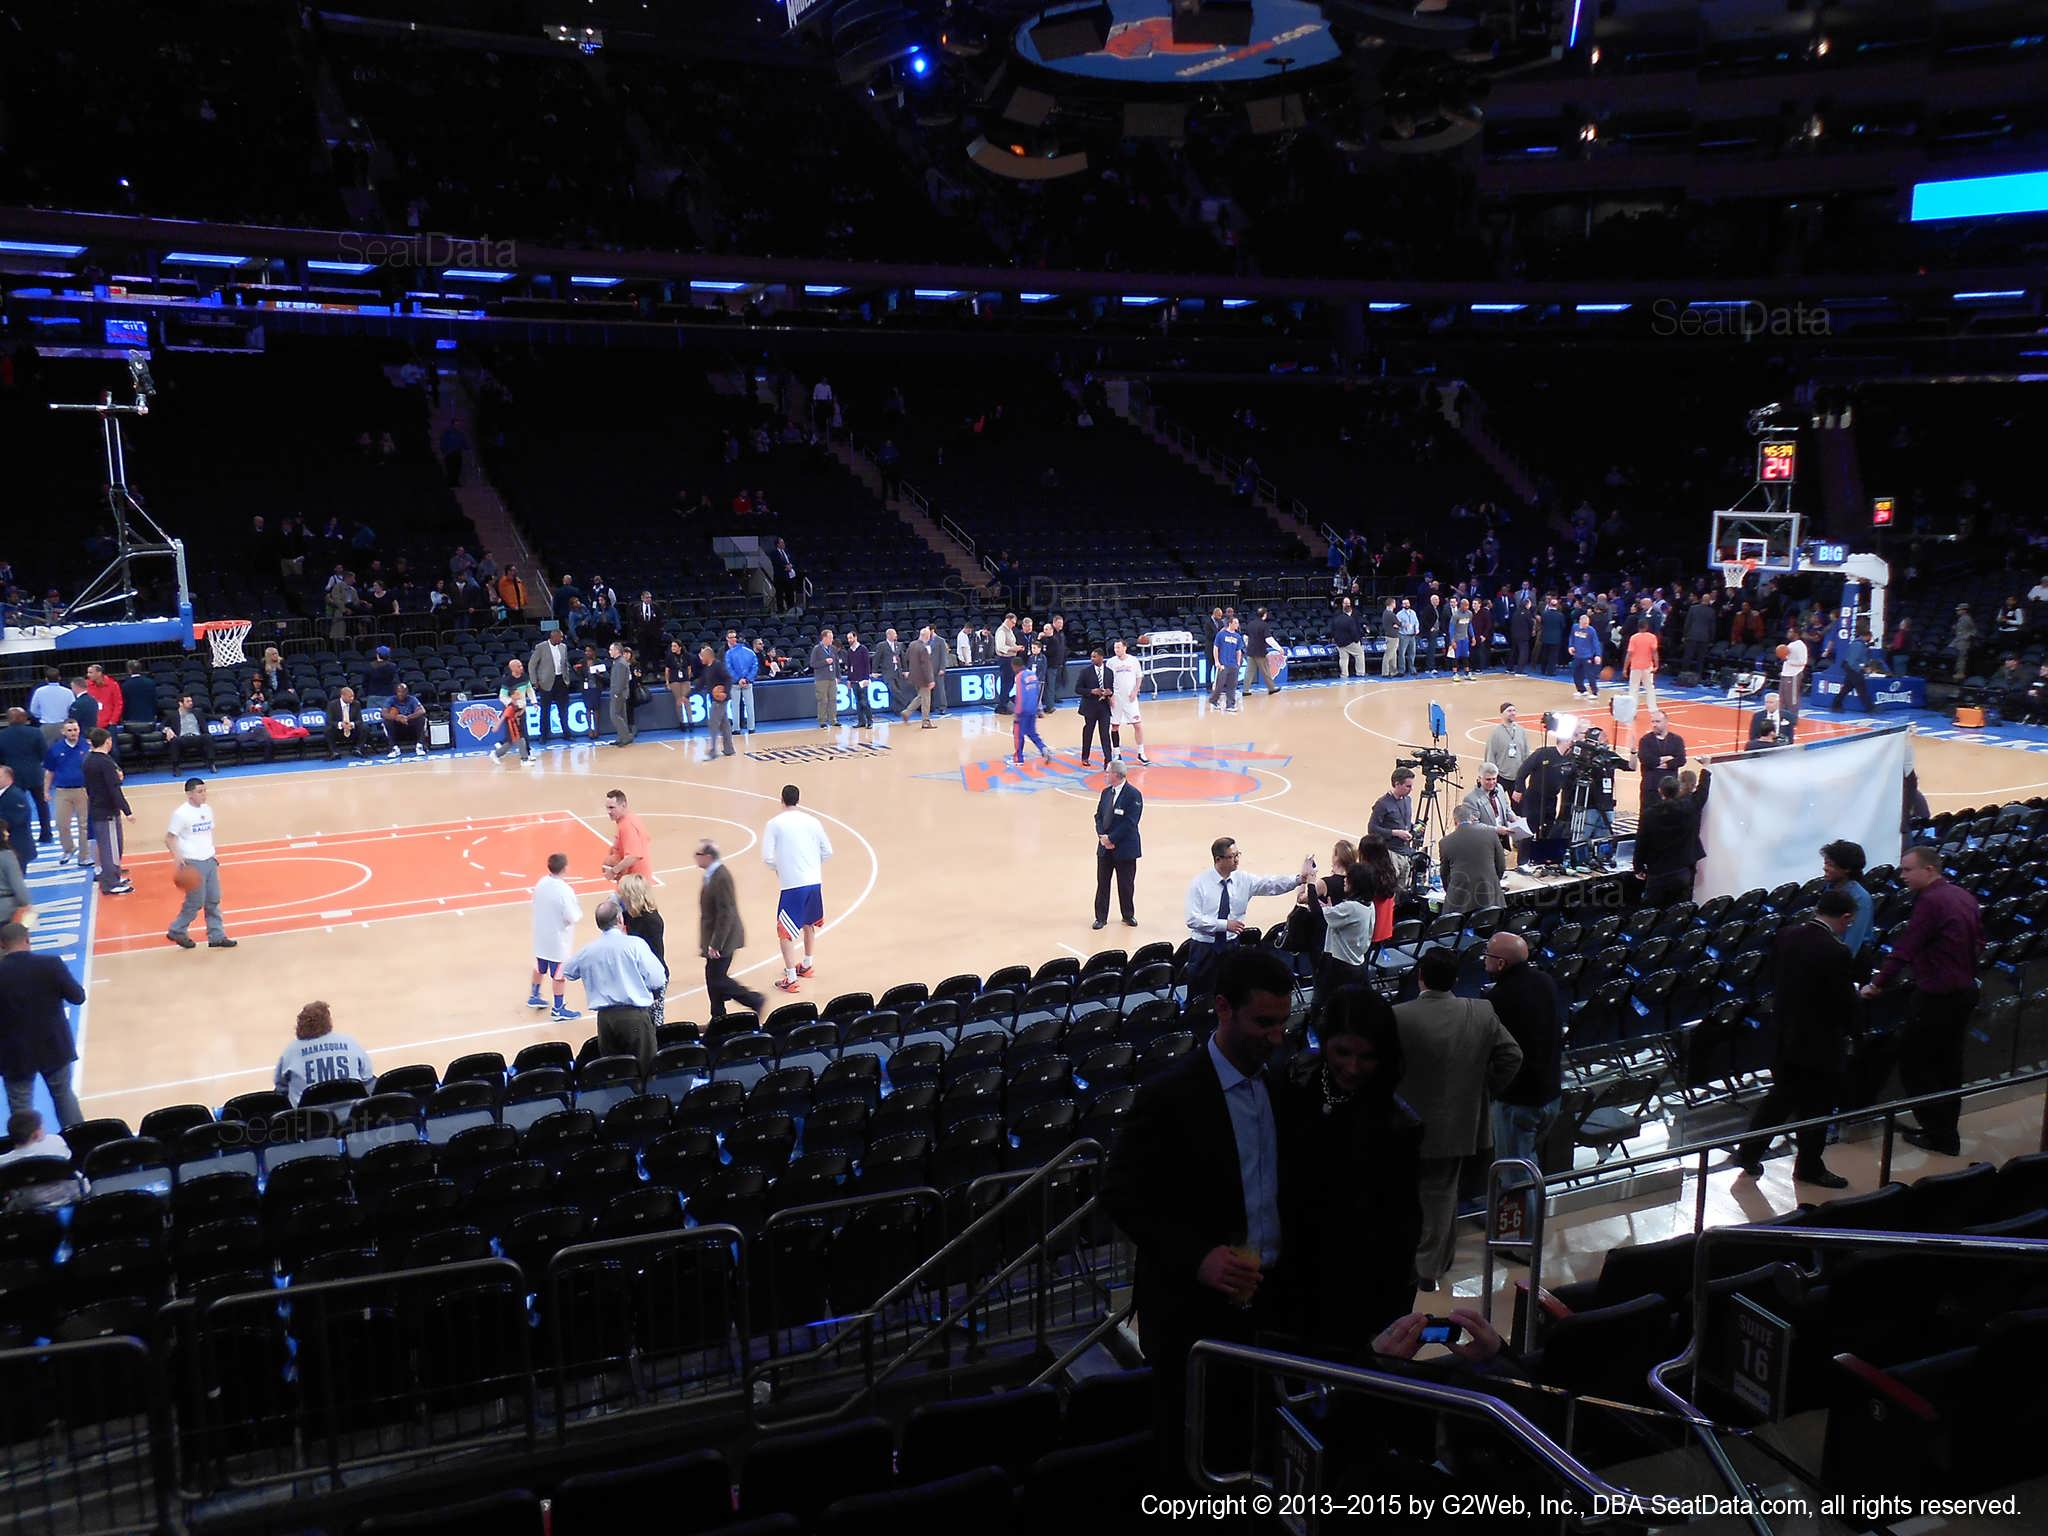 Seat view from section 10 at Madison Square Garden, home of the New York Knicks.